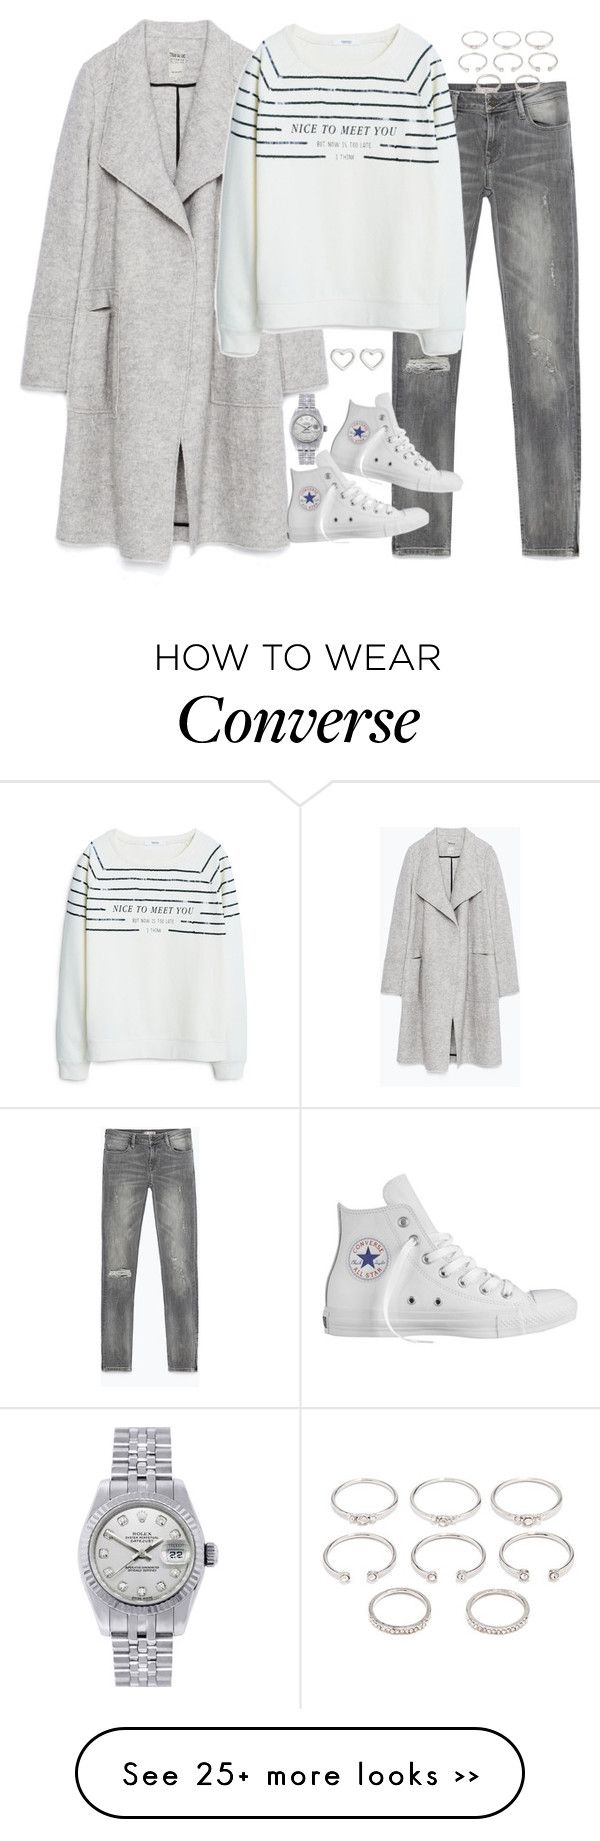 """""""Geen titel #3170"""" by chiara-rinaldi on Polyvore featuring Zara, MANGO, Converse, Forever 21, Rolex and Marc by Marc Jacobs"""